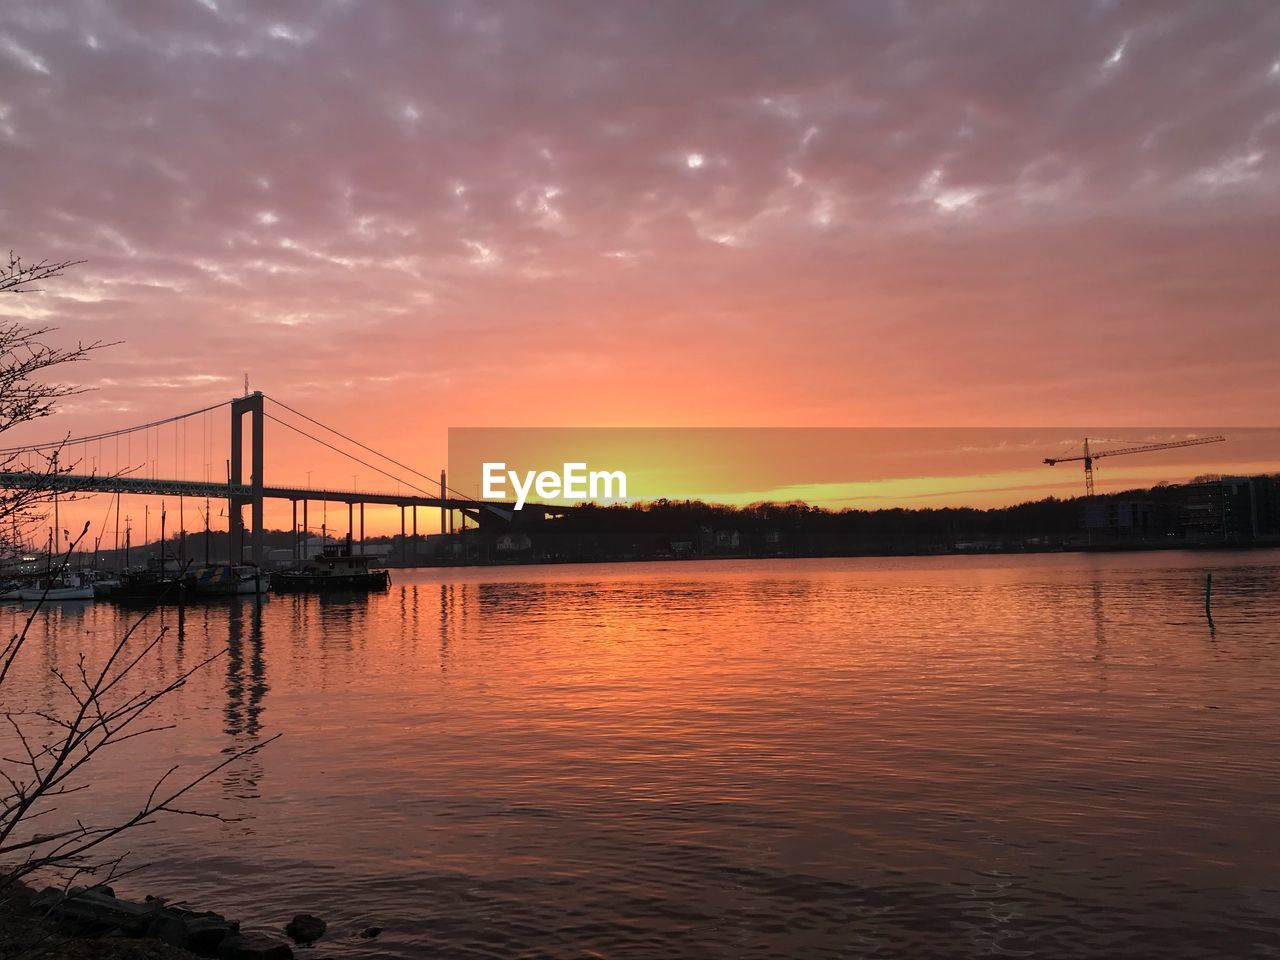 sunset, sky, water, cloud - sky, bridge, connection, orange color, transportation, bridge - man made structure, beauty in nature, architecture, built structure, waterfront, reflection, no people, nature, scenics - nature, river, silhouette, outdoors, bay